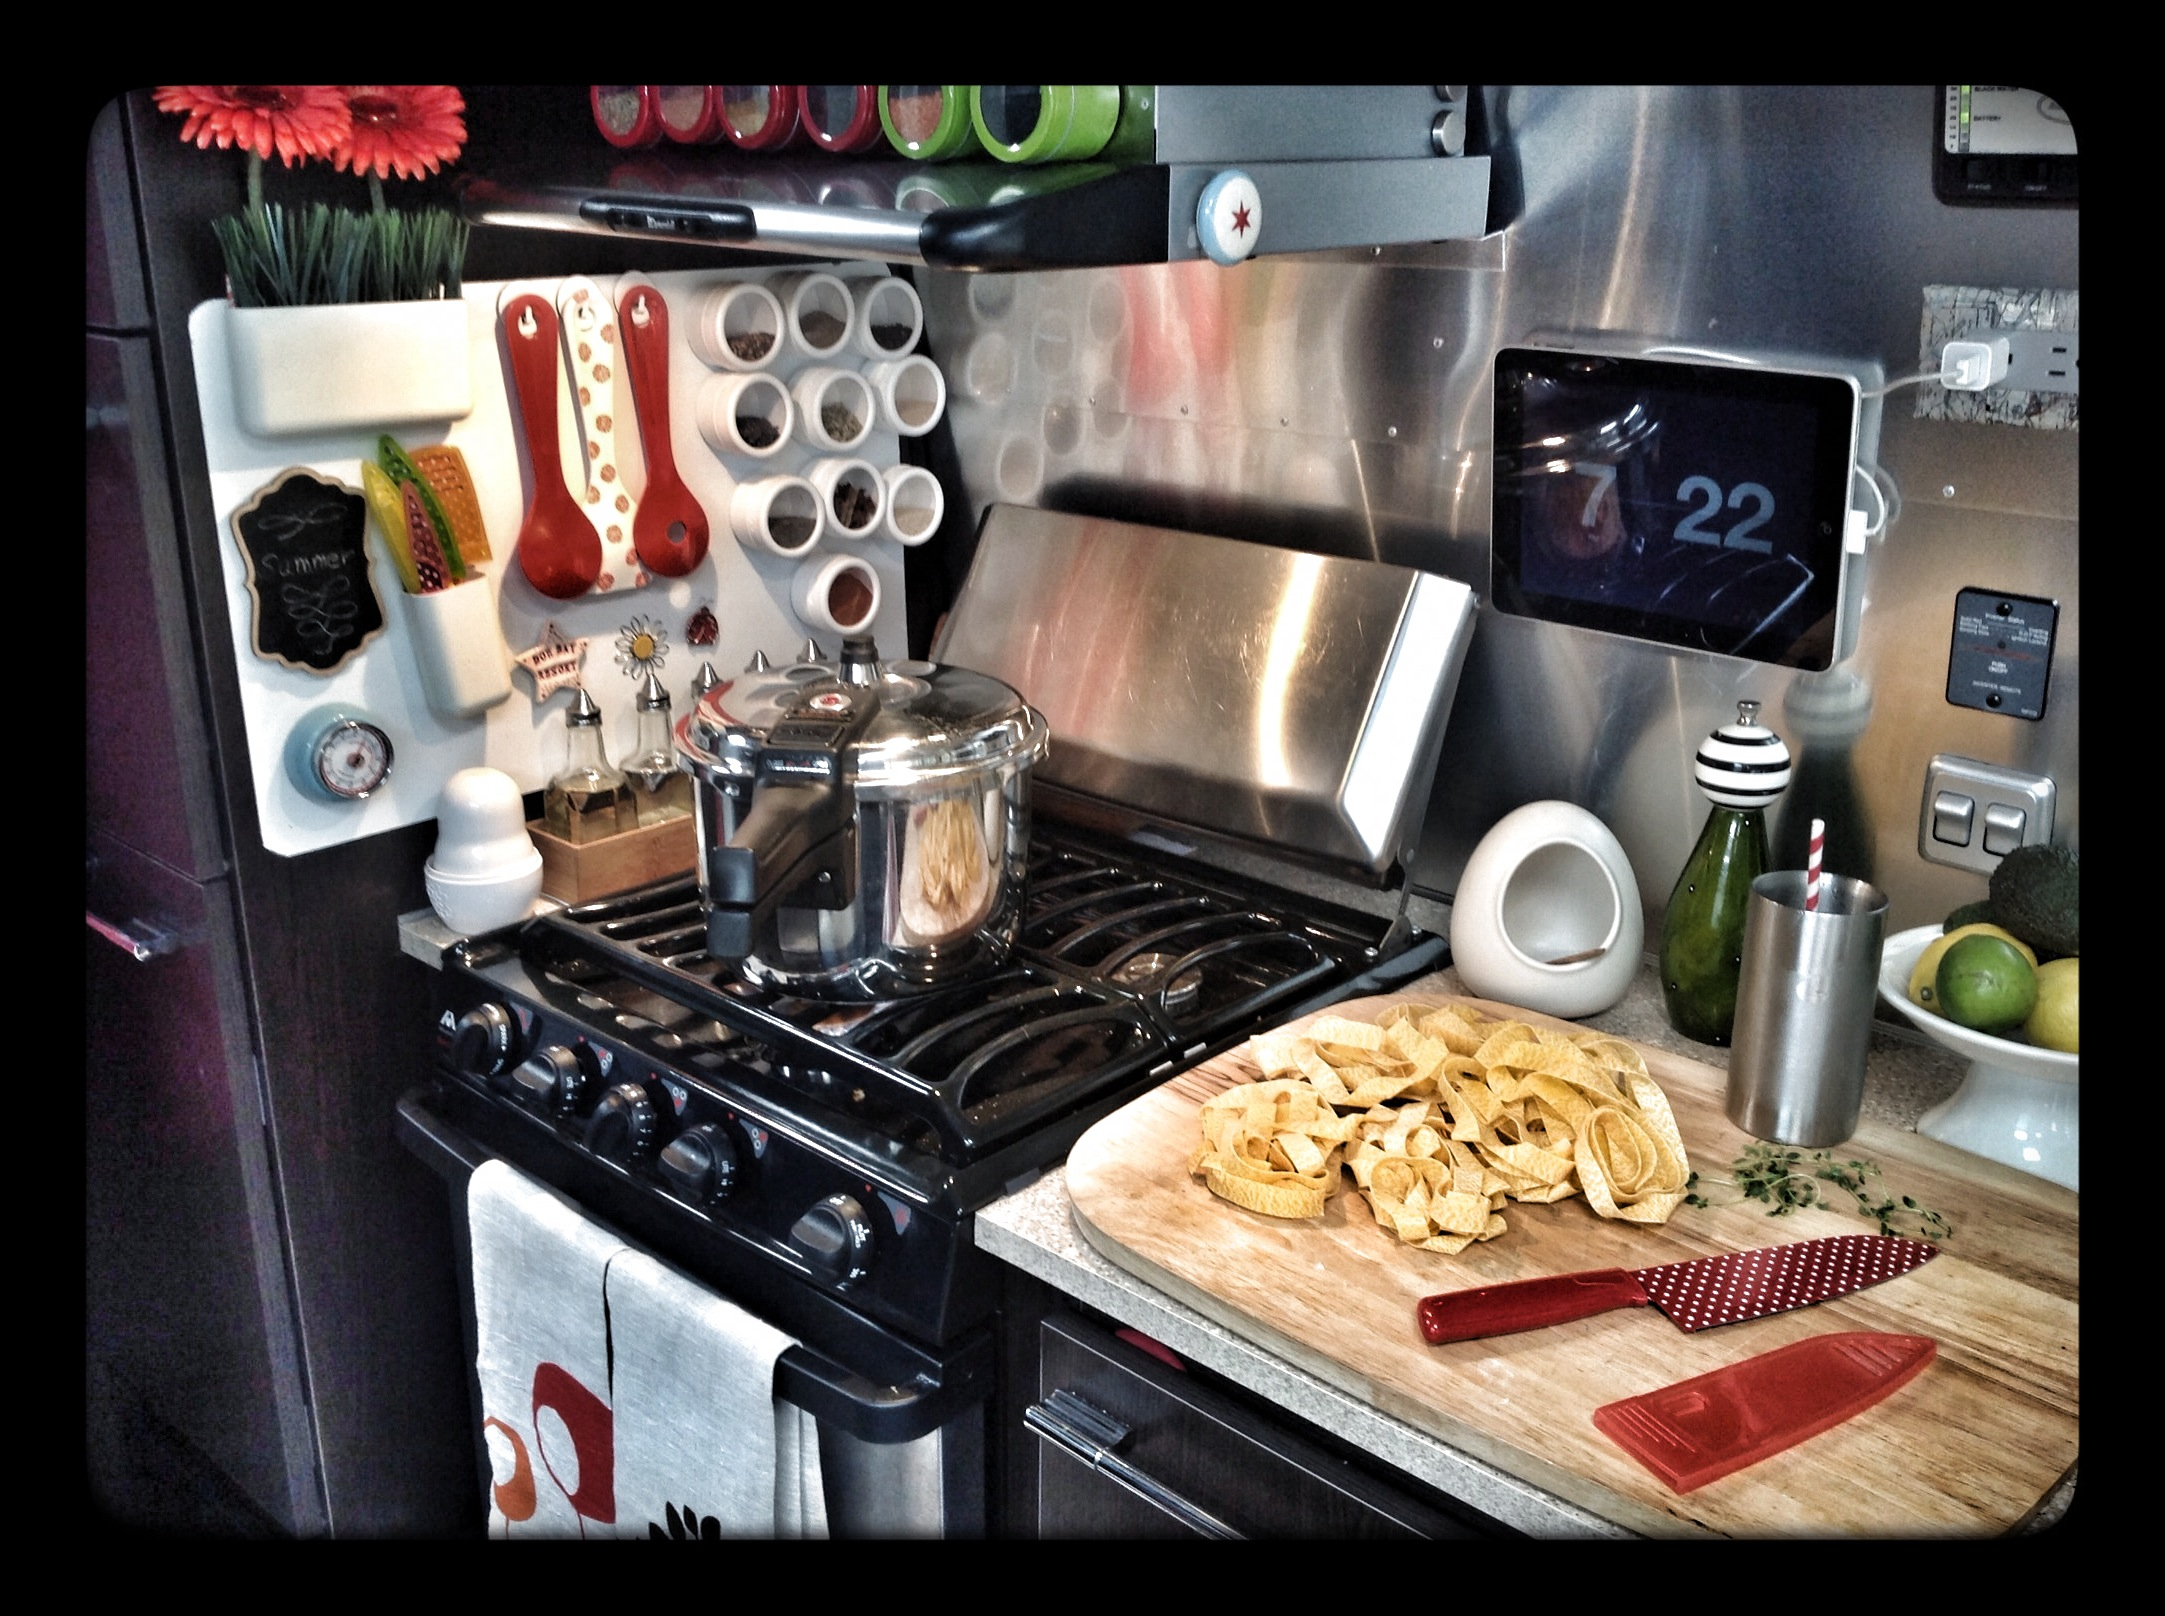 Airstream Kitchen cooking Pressure Cooker Pulled Pork